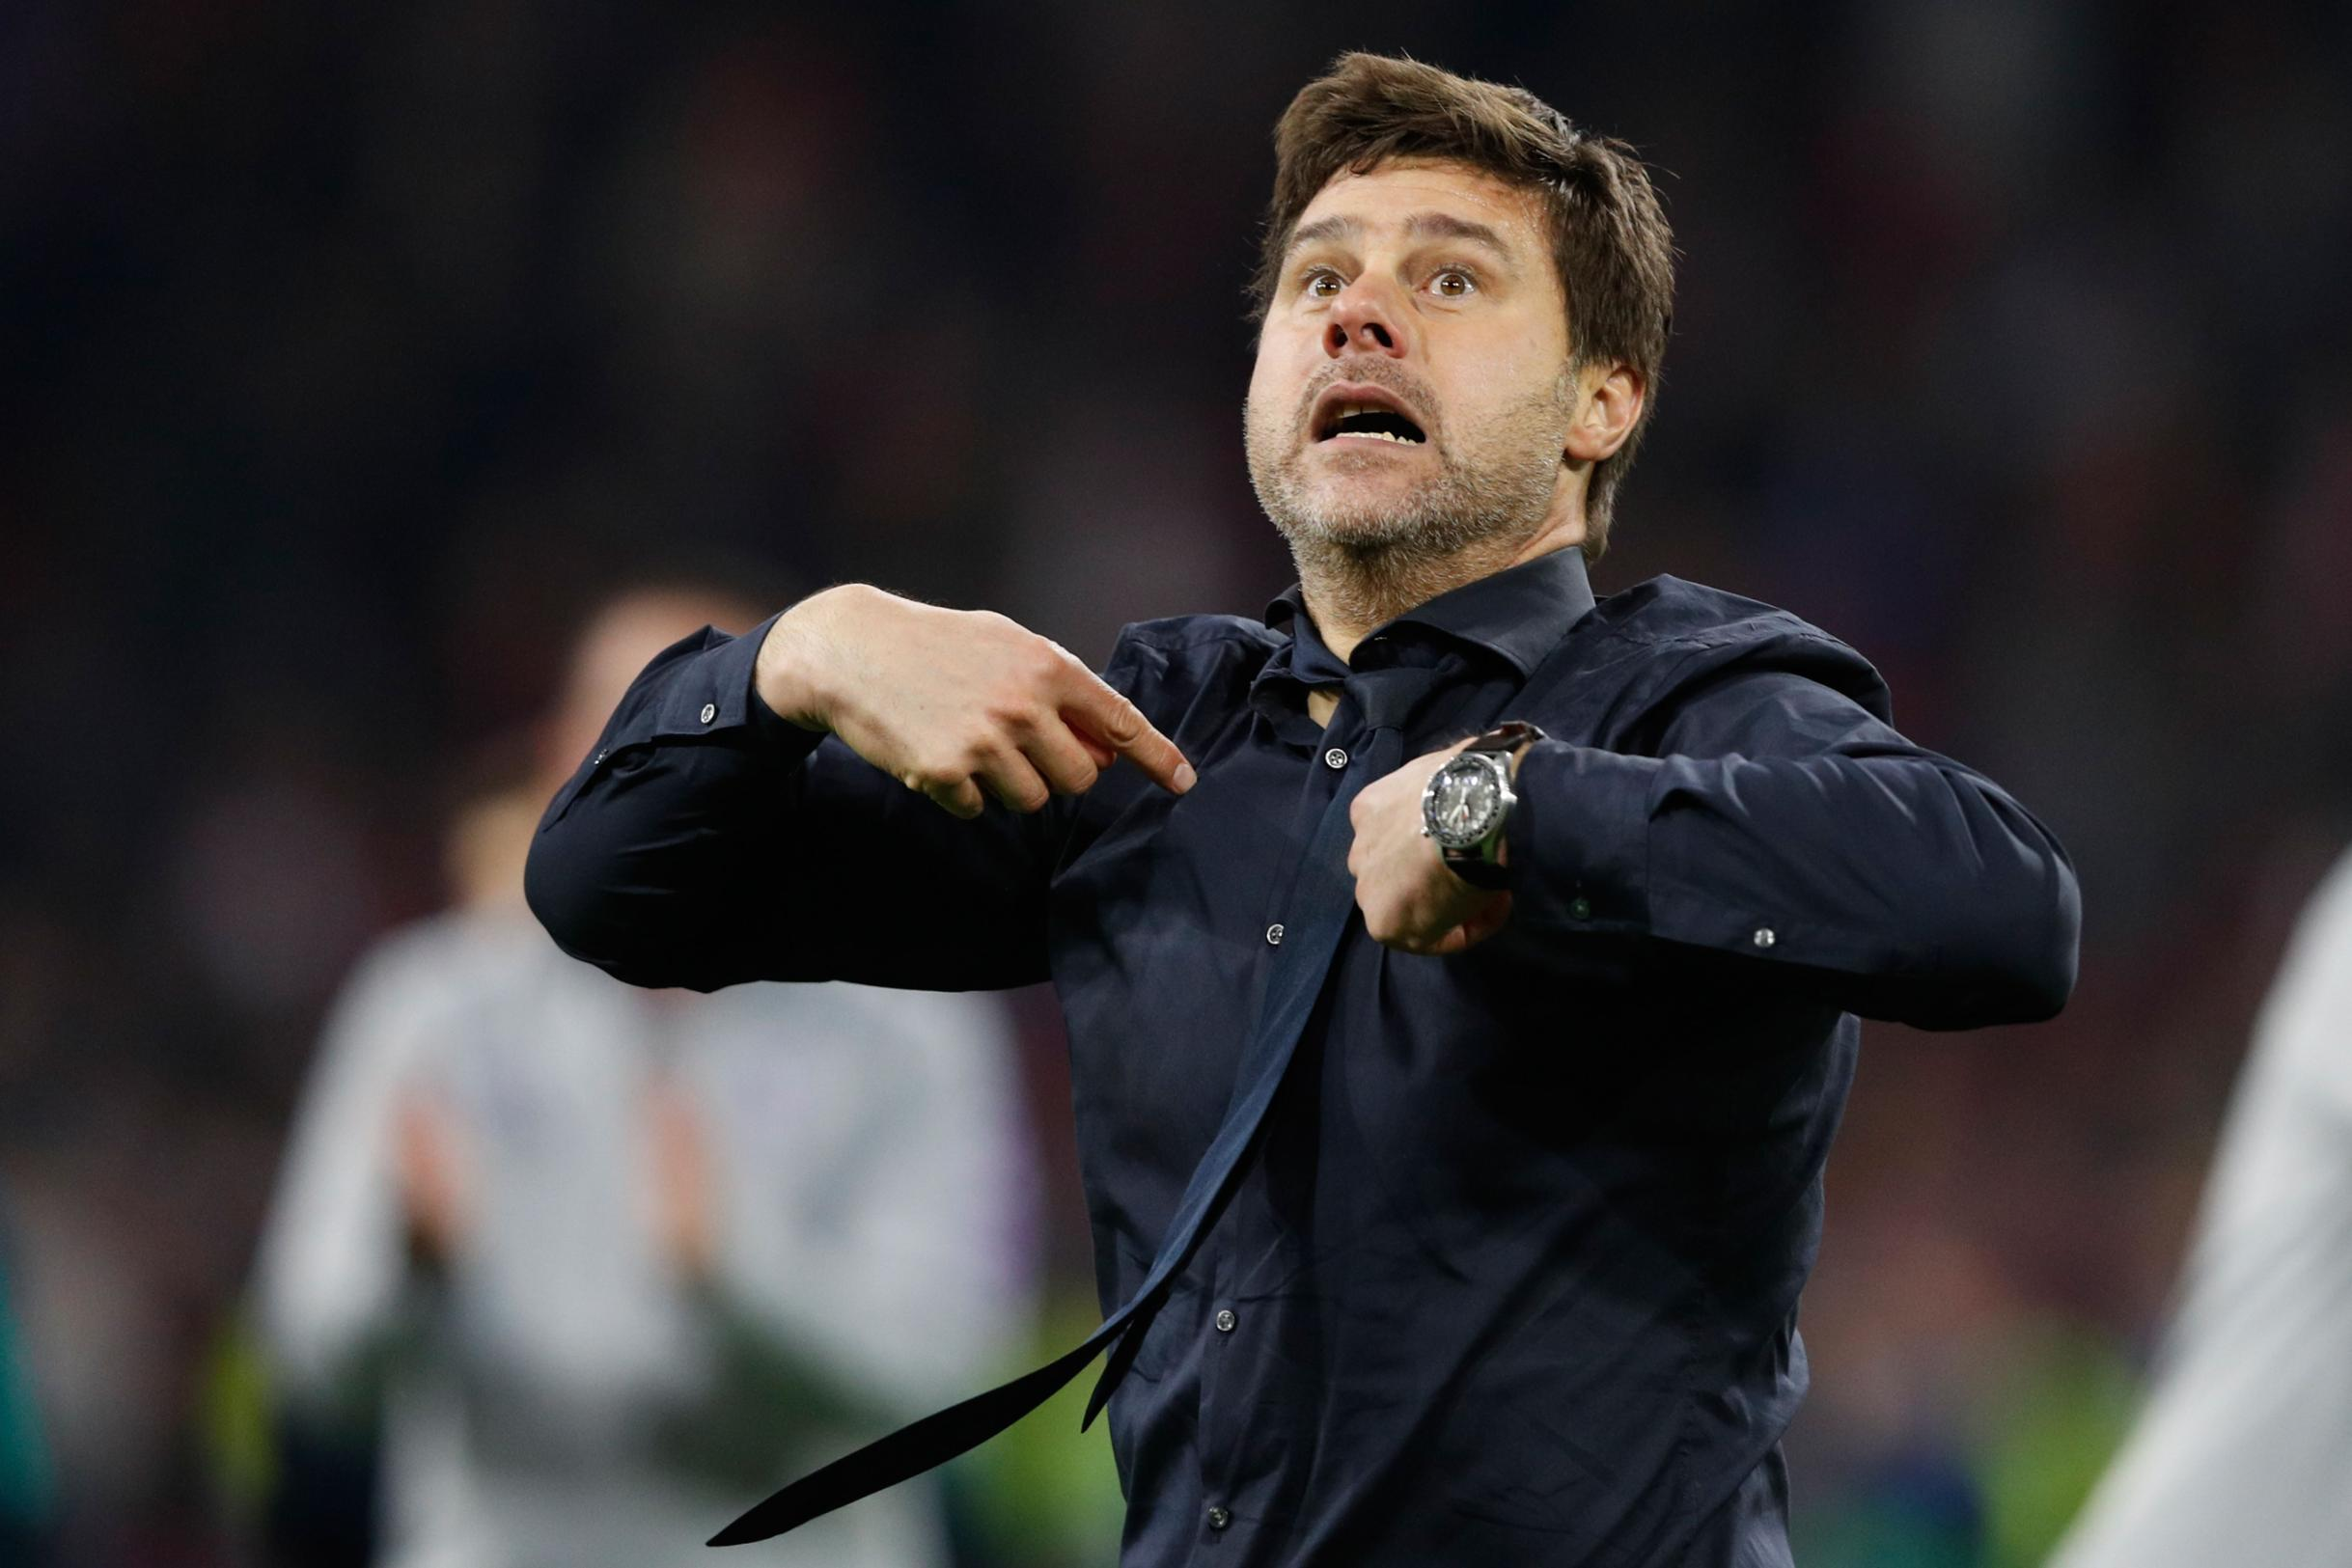 Mauricio Pochettino takes charge at French powerhouse Paris Saint-Germain